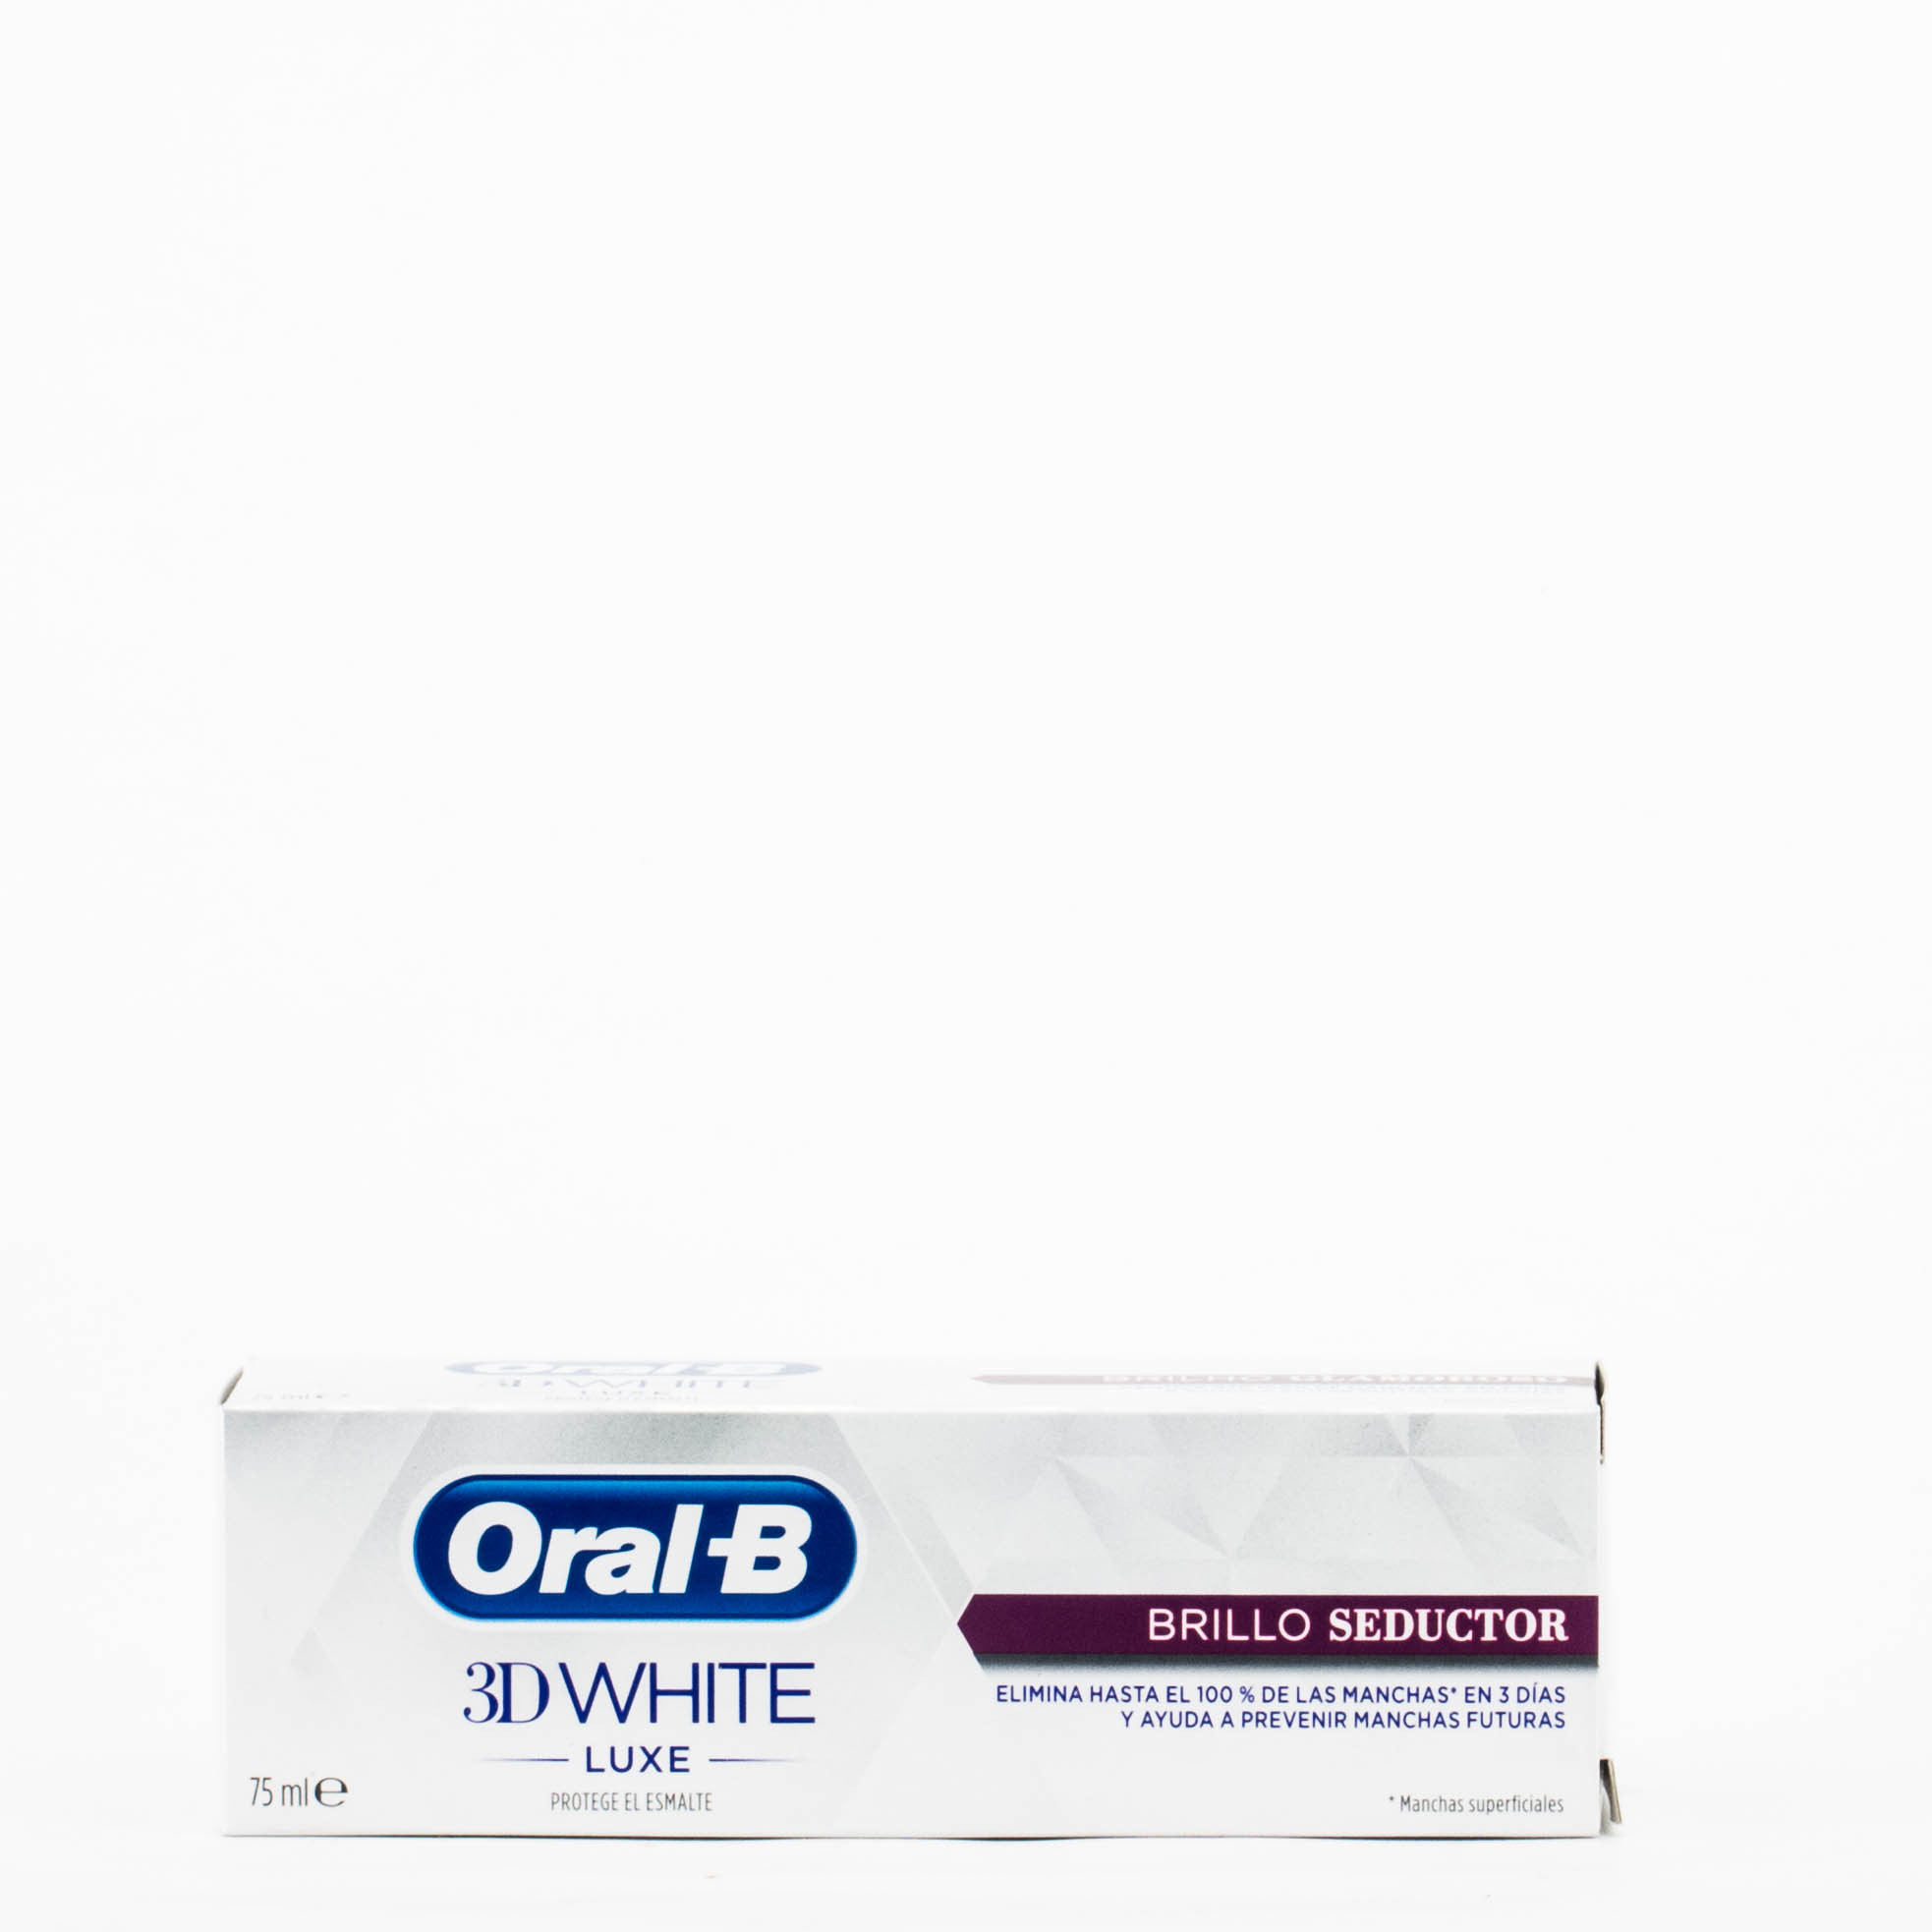 Oral B 3D White Luxe Brillo seductor, 75ml